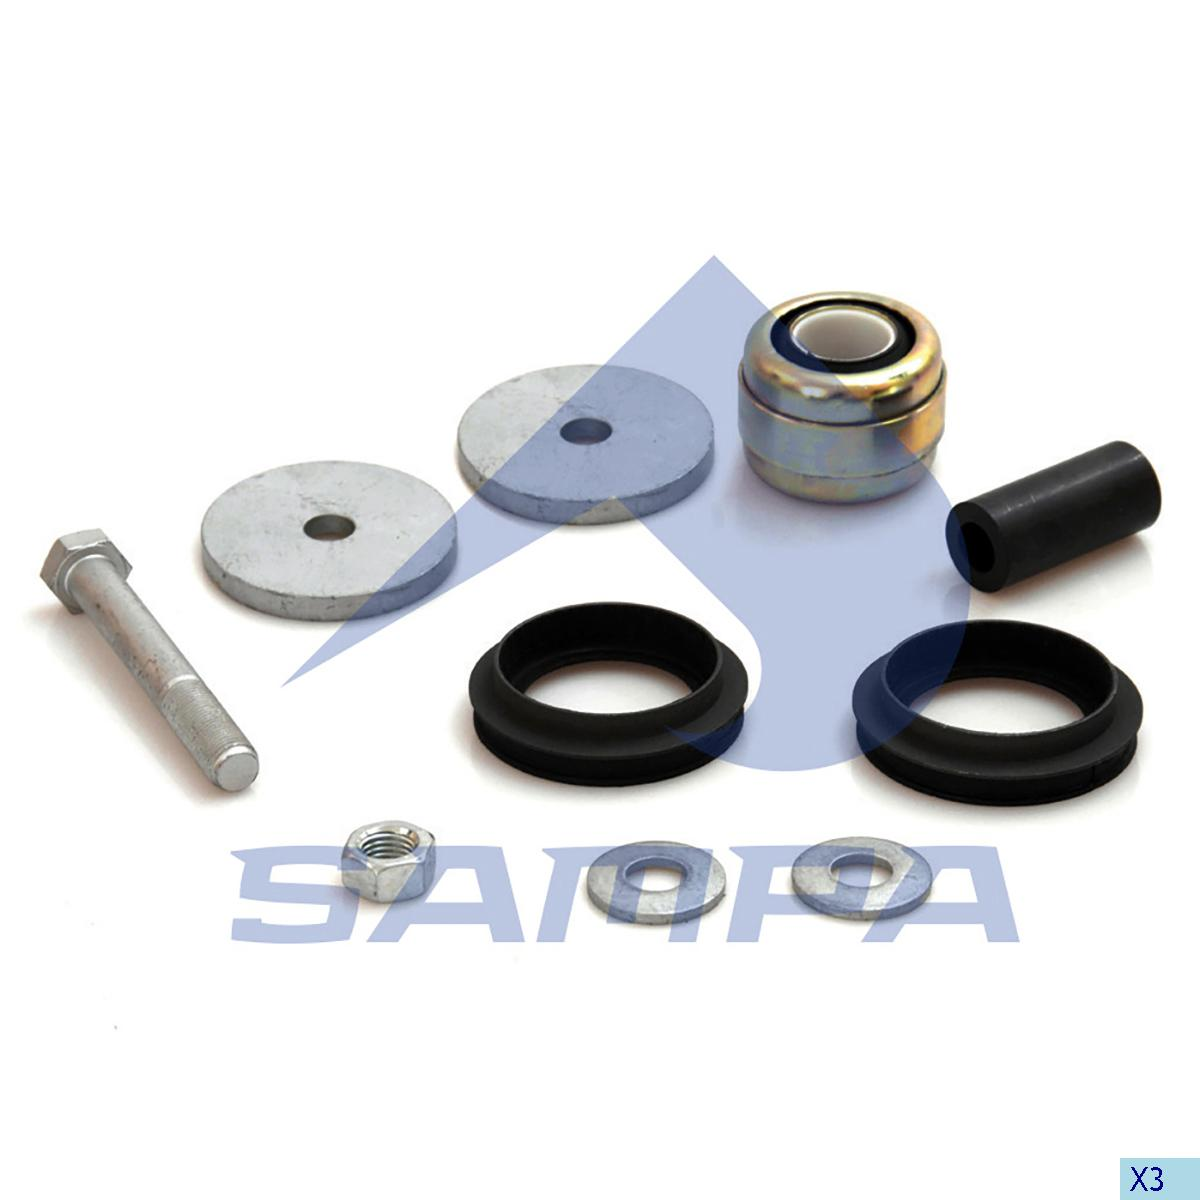 Repair Kit, Cab, R.V.I., Cab